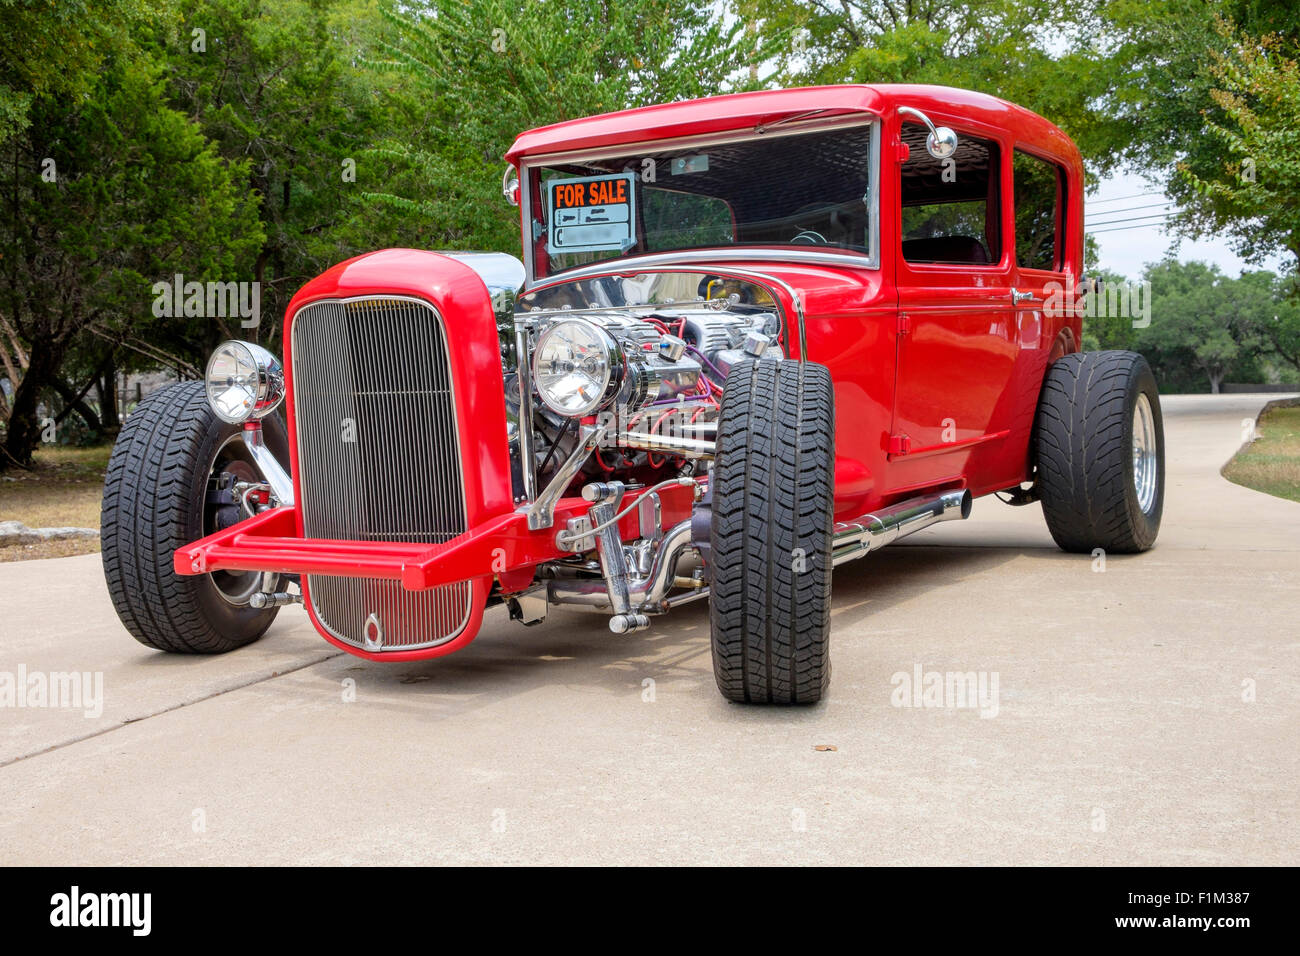 Front view of a For Sale customized 1931 Ford sedan hot-rod painted ...